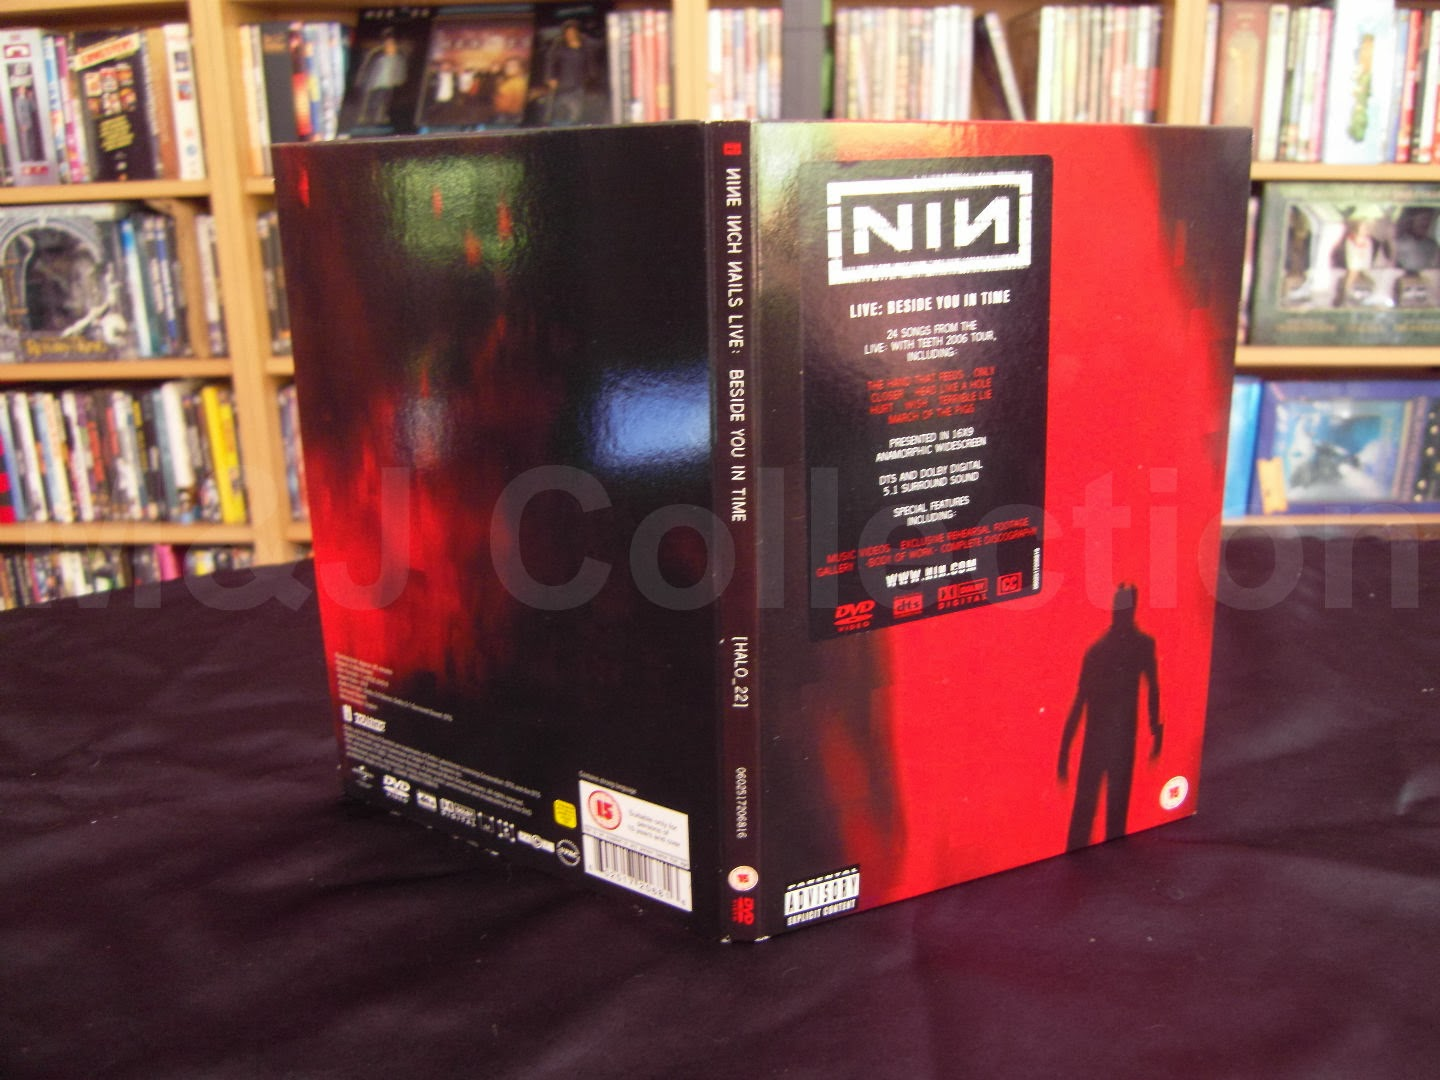 M&J\'s Collection: Nine Inch Nails Live: Beside You in Time